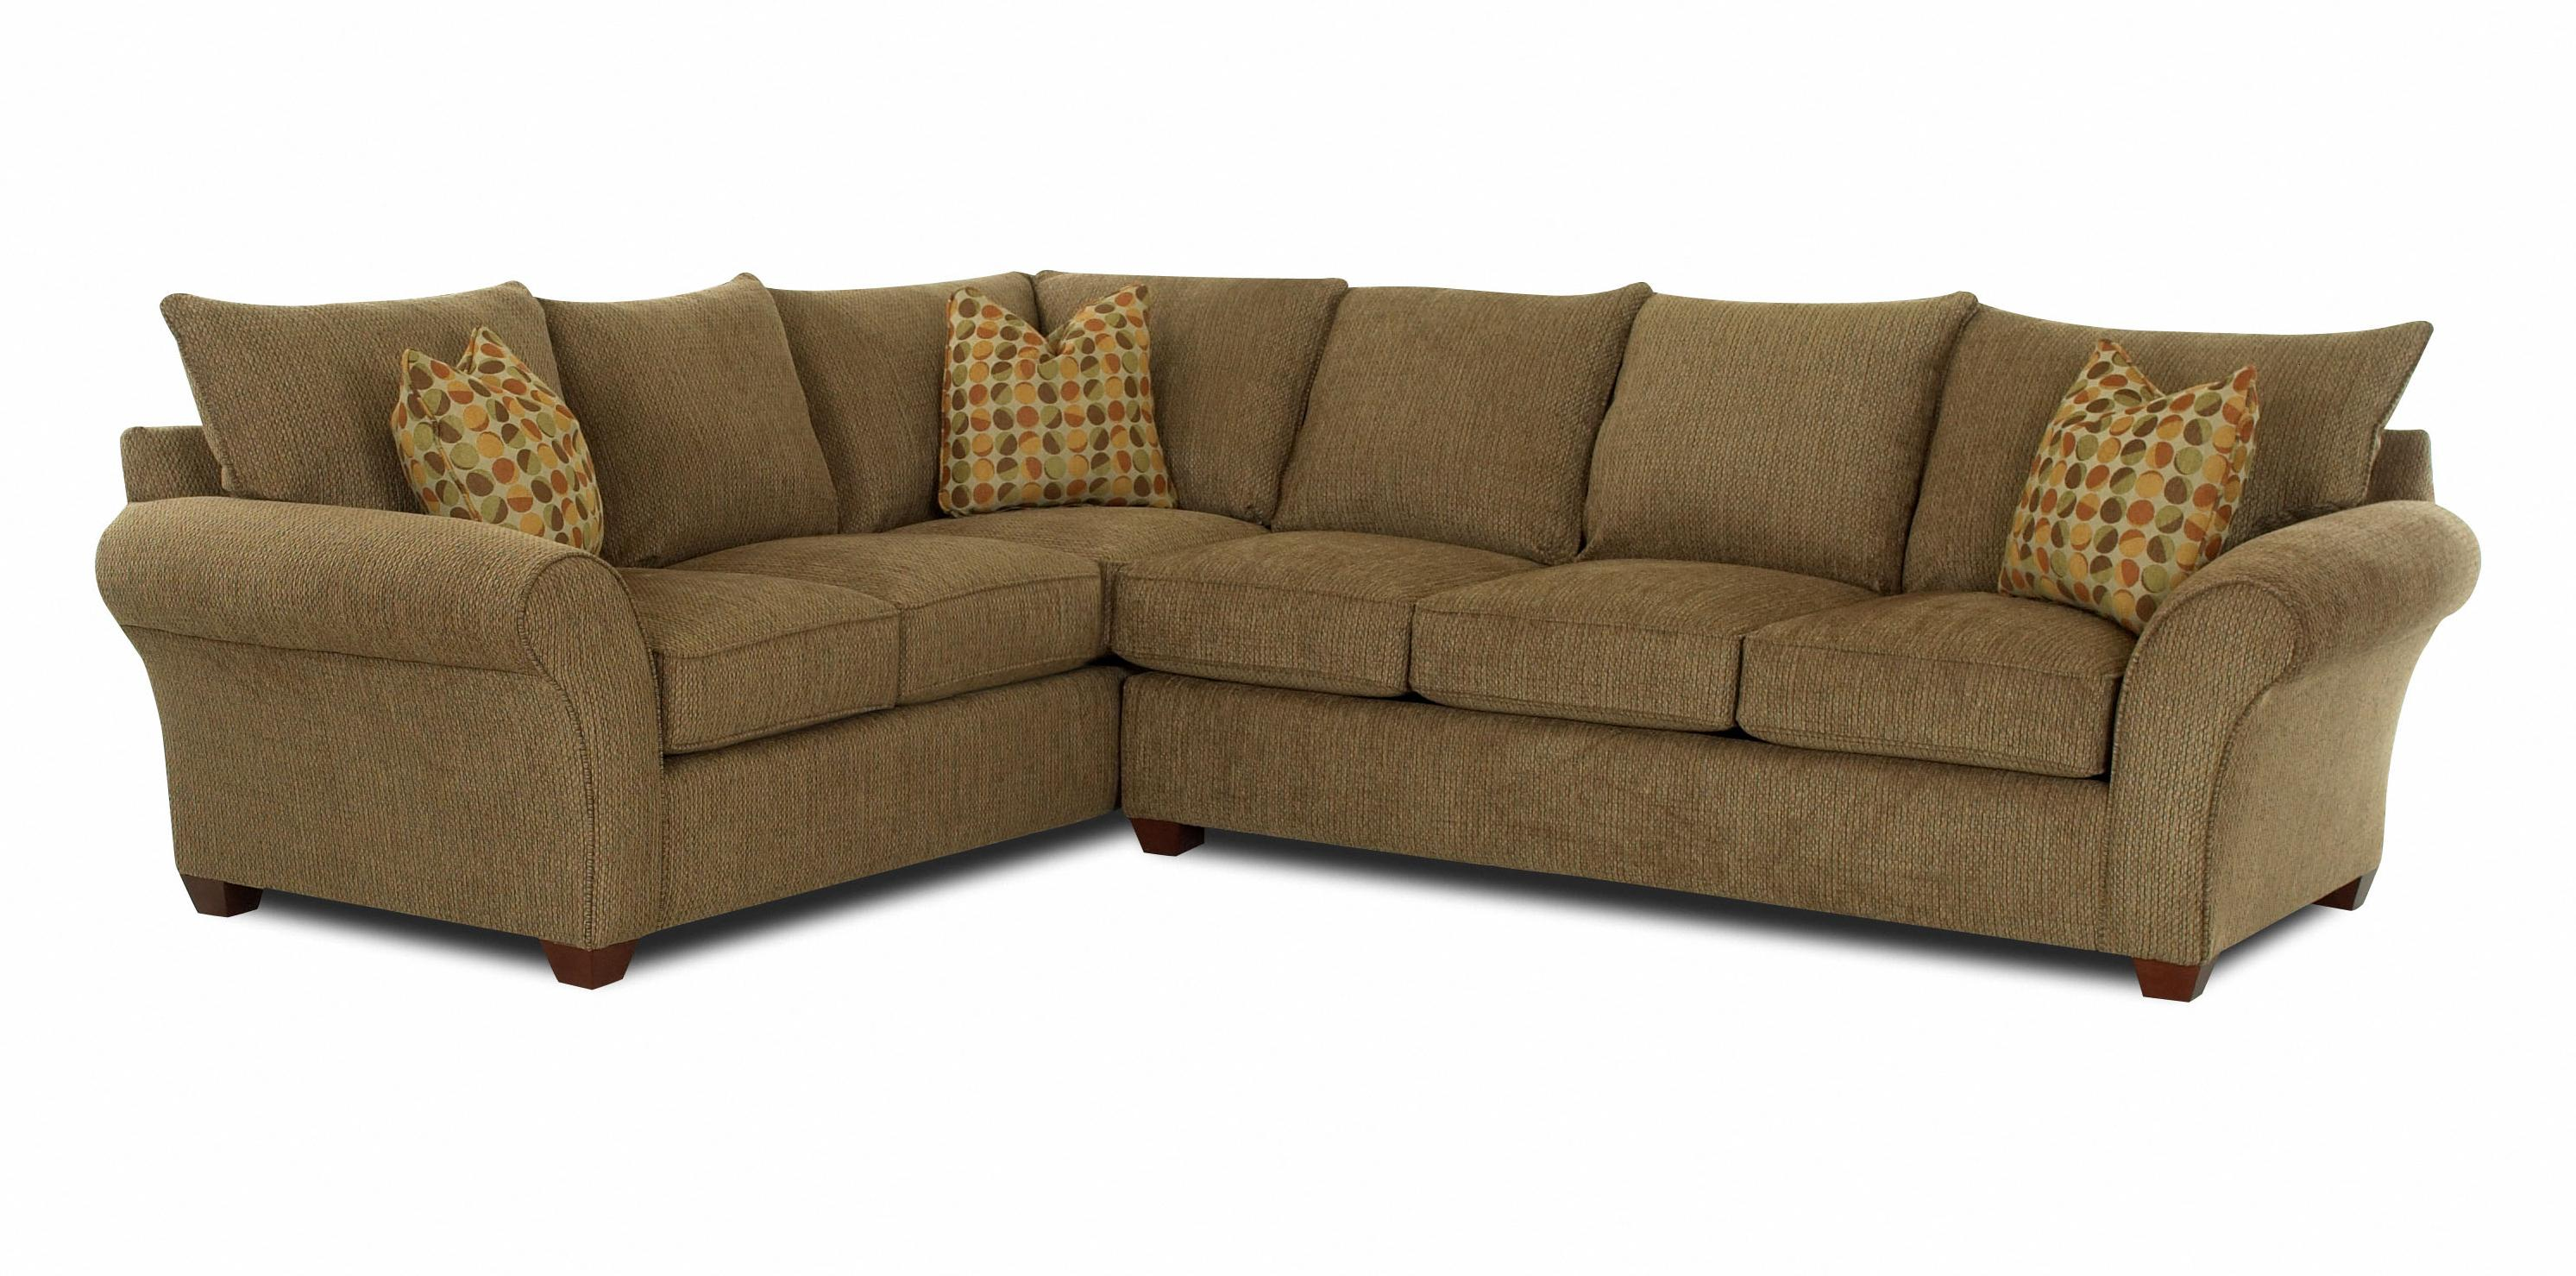 Transitional 2 Piece Sectional Sofa